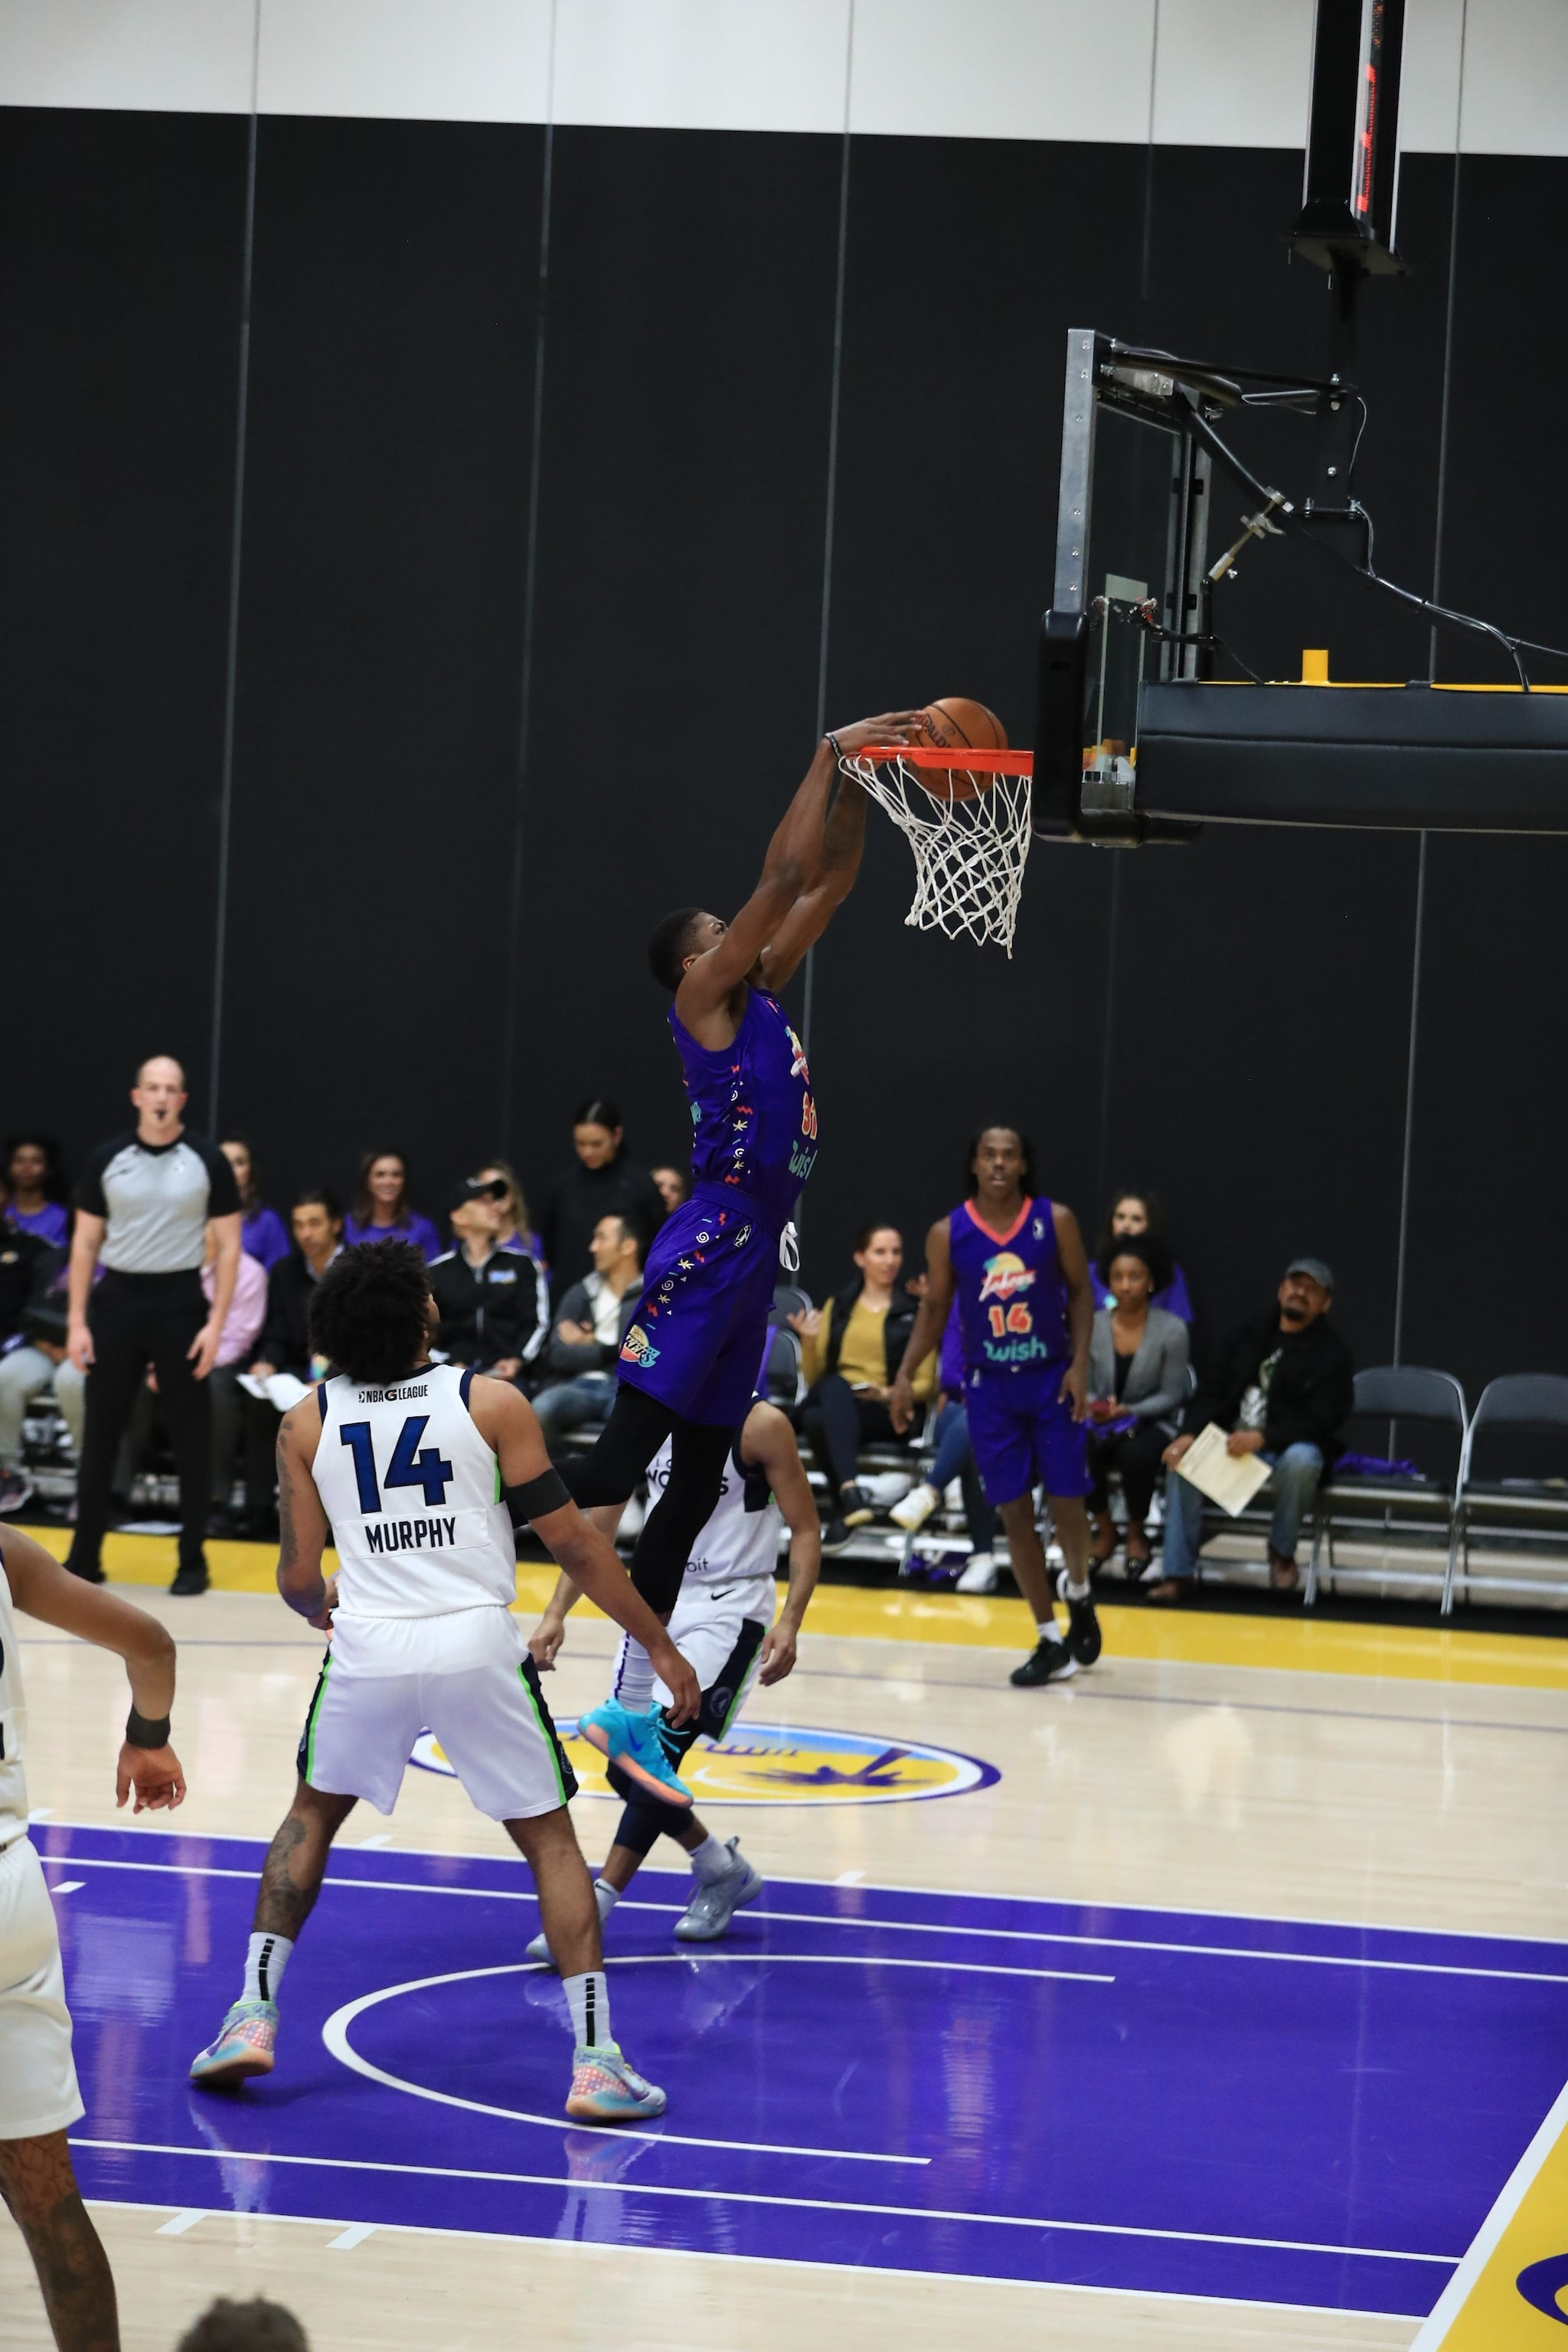 South Bay Lakers 90's Night - 1/8/20